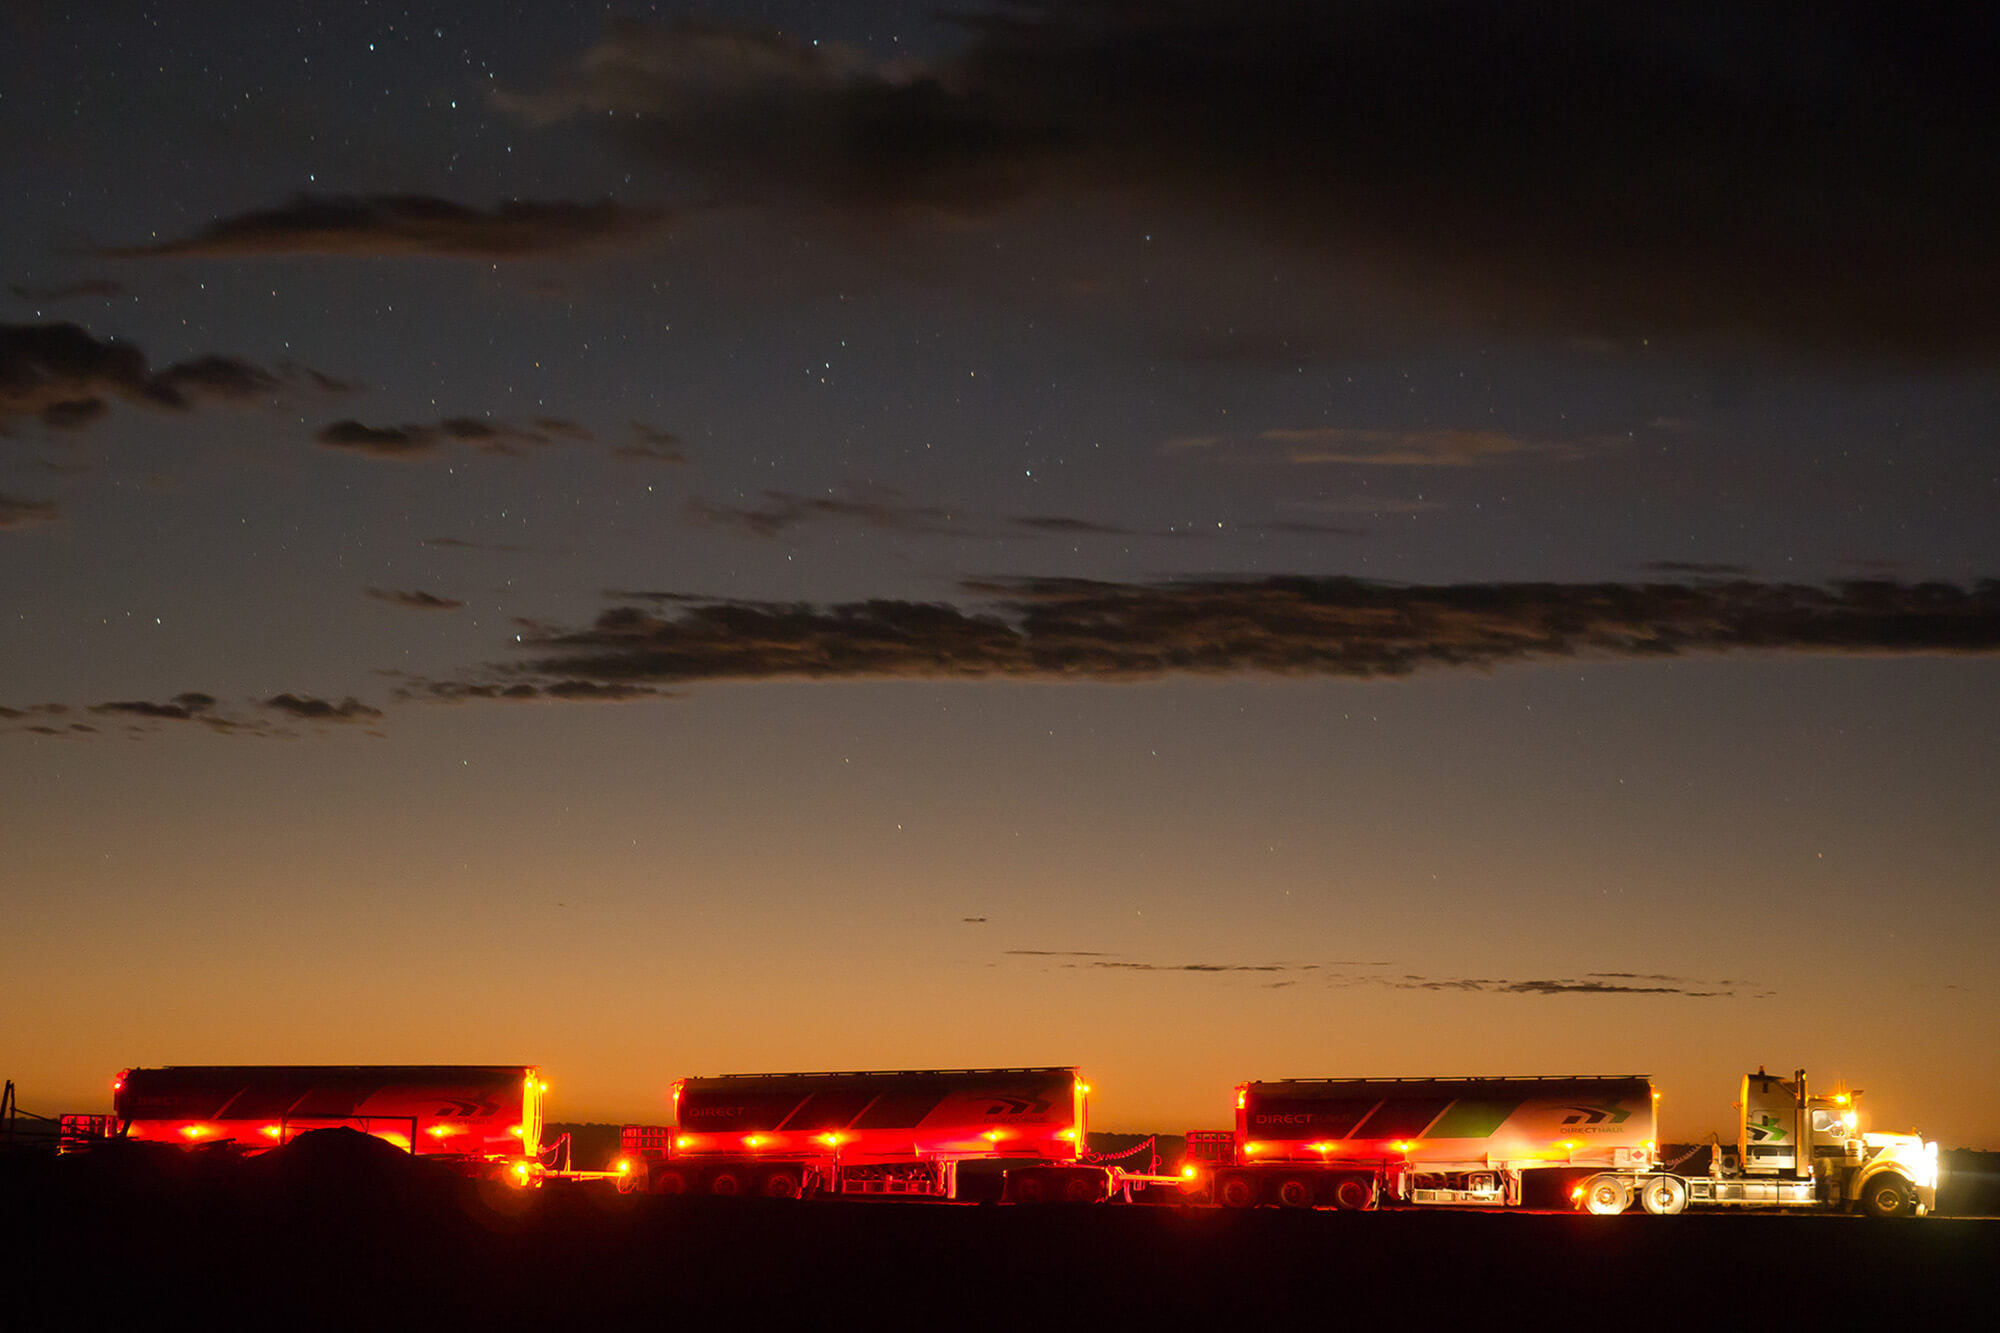 a road train crosses the claypan in the middle of the night